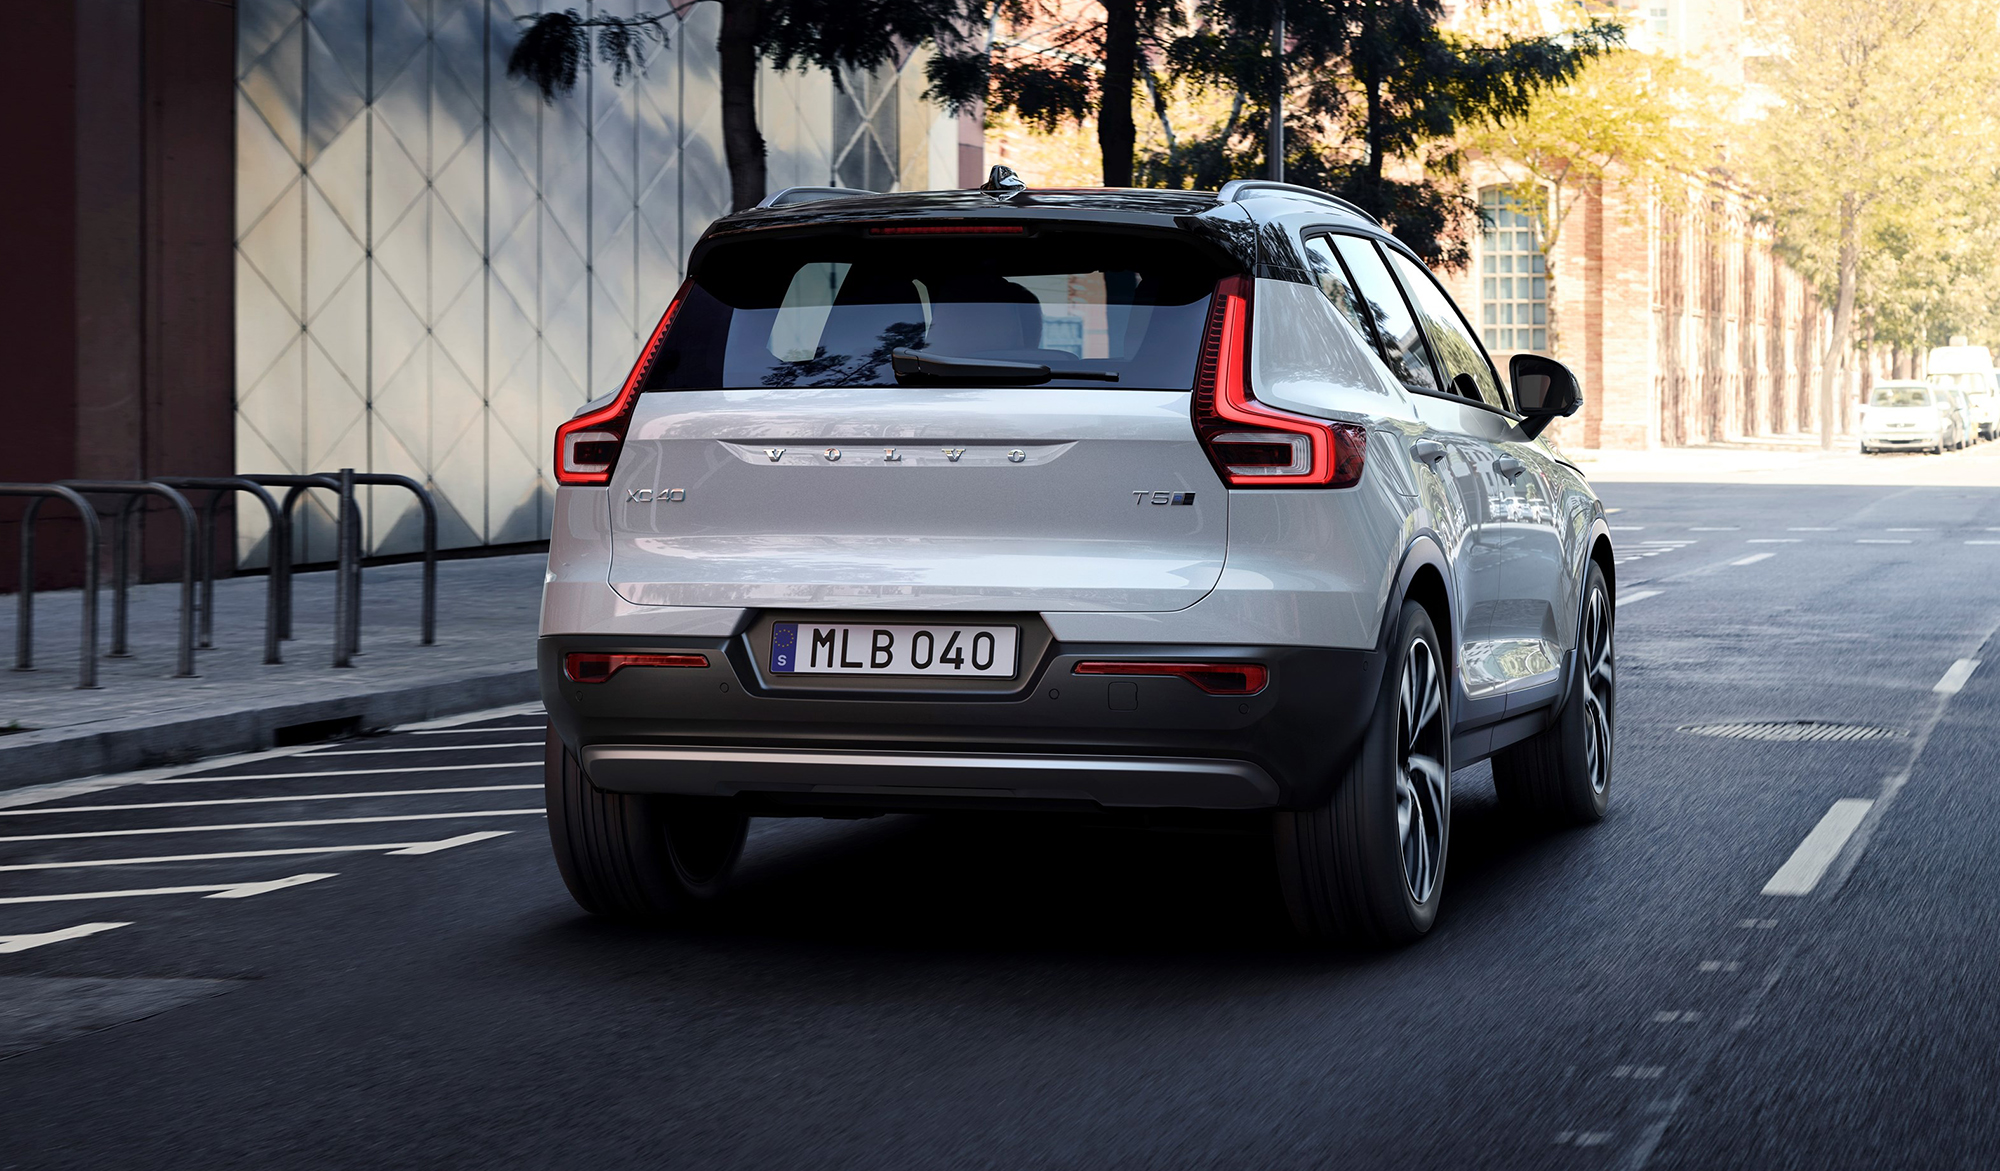 See Photos With 2018 Photos: 2018 Volvo XC40 Revealed - Photos